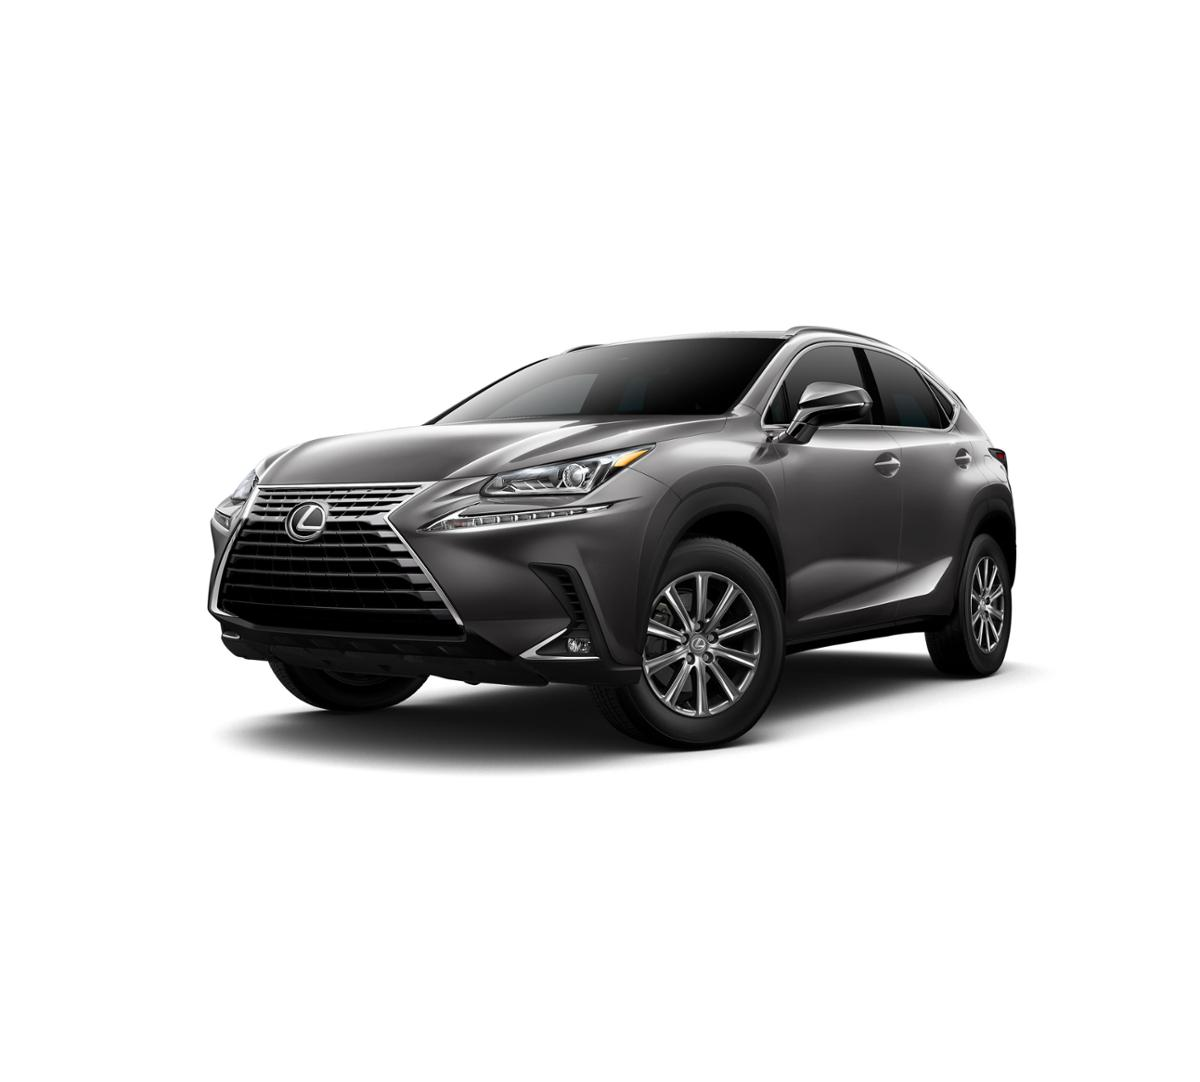 2018 Lexus NX 300 Vehicle Photo in El Monte, CA 91731